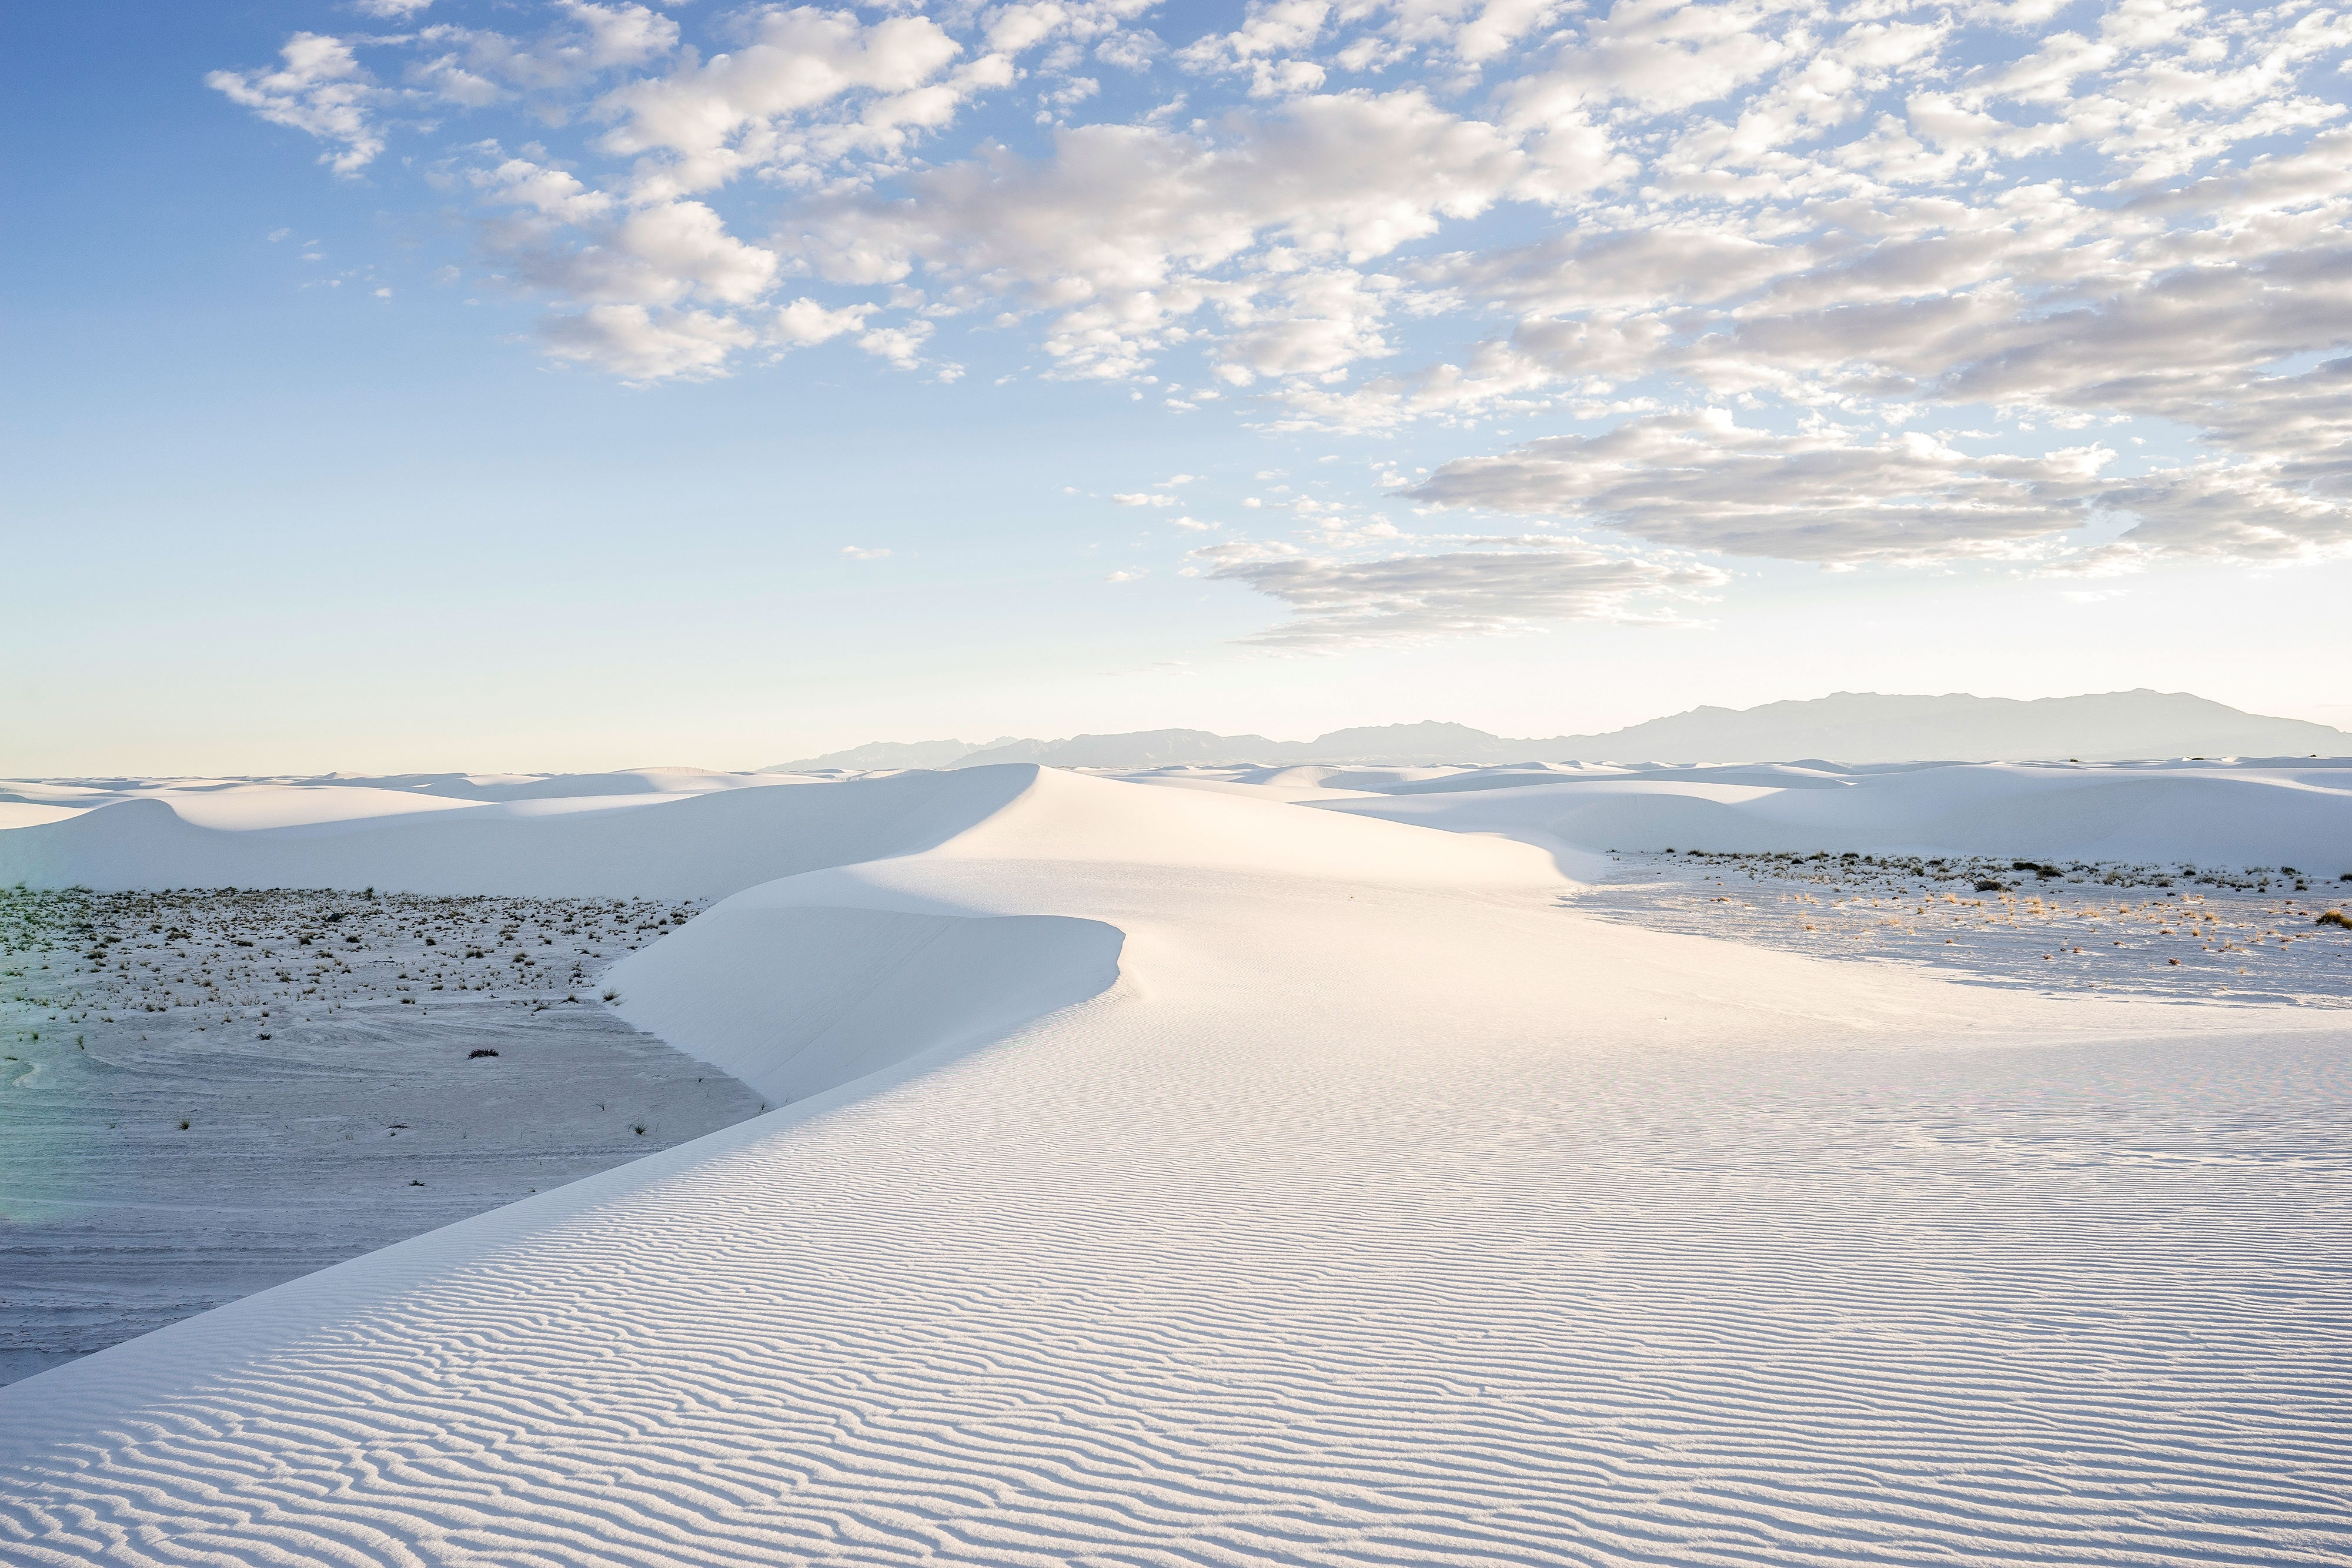 new-mexico-white-sands-gettyimages-1026457358.jpg